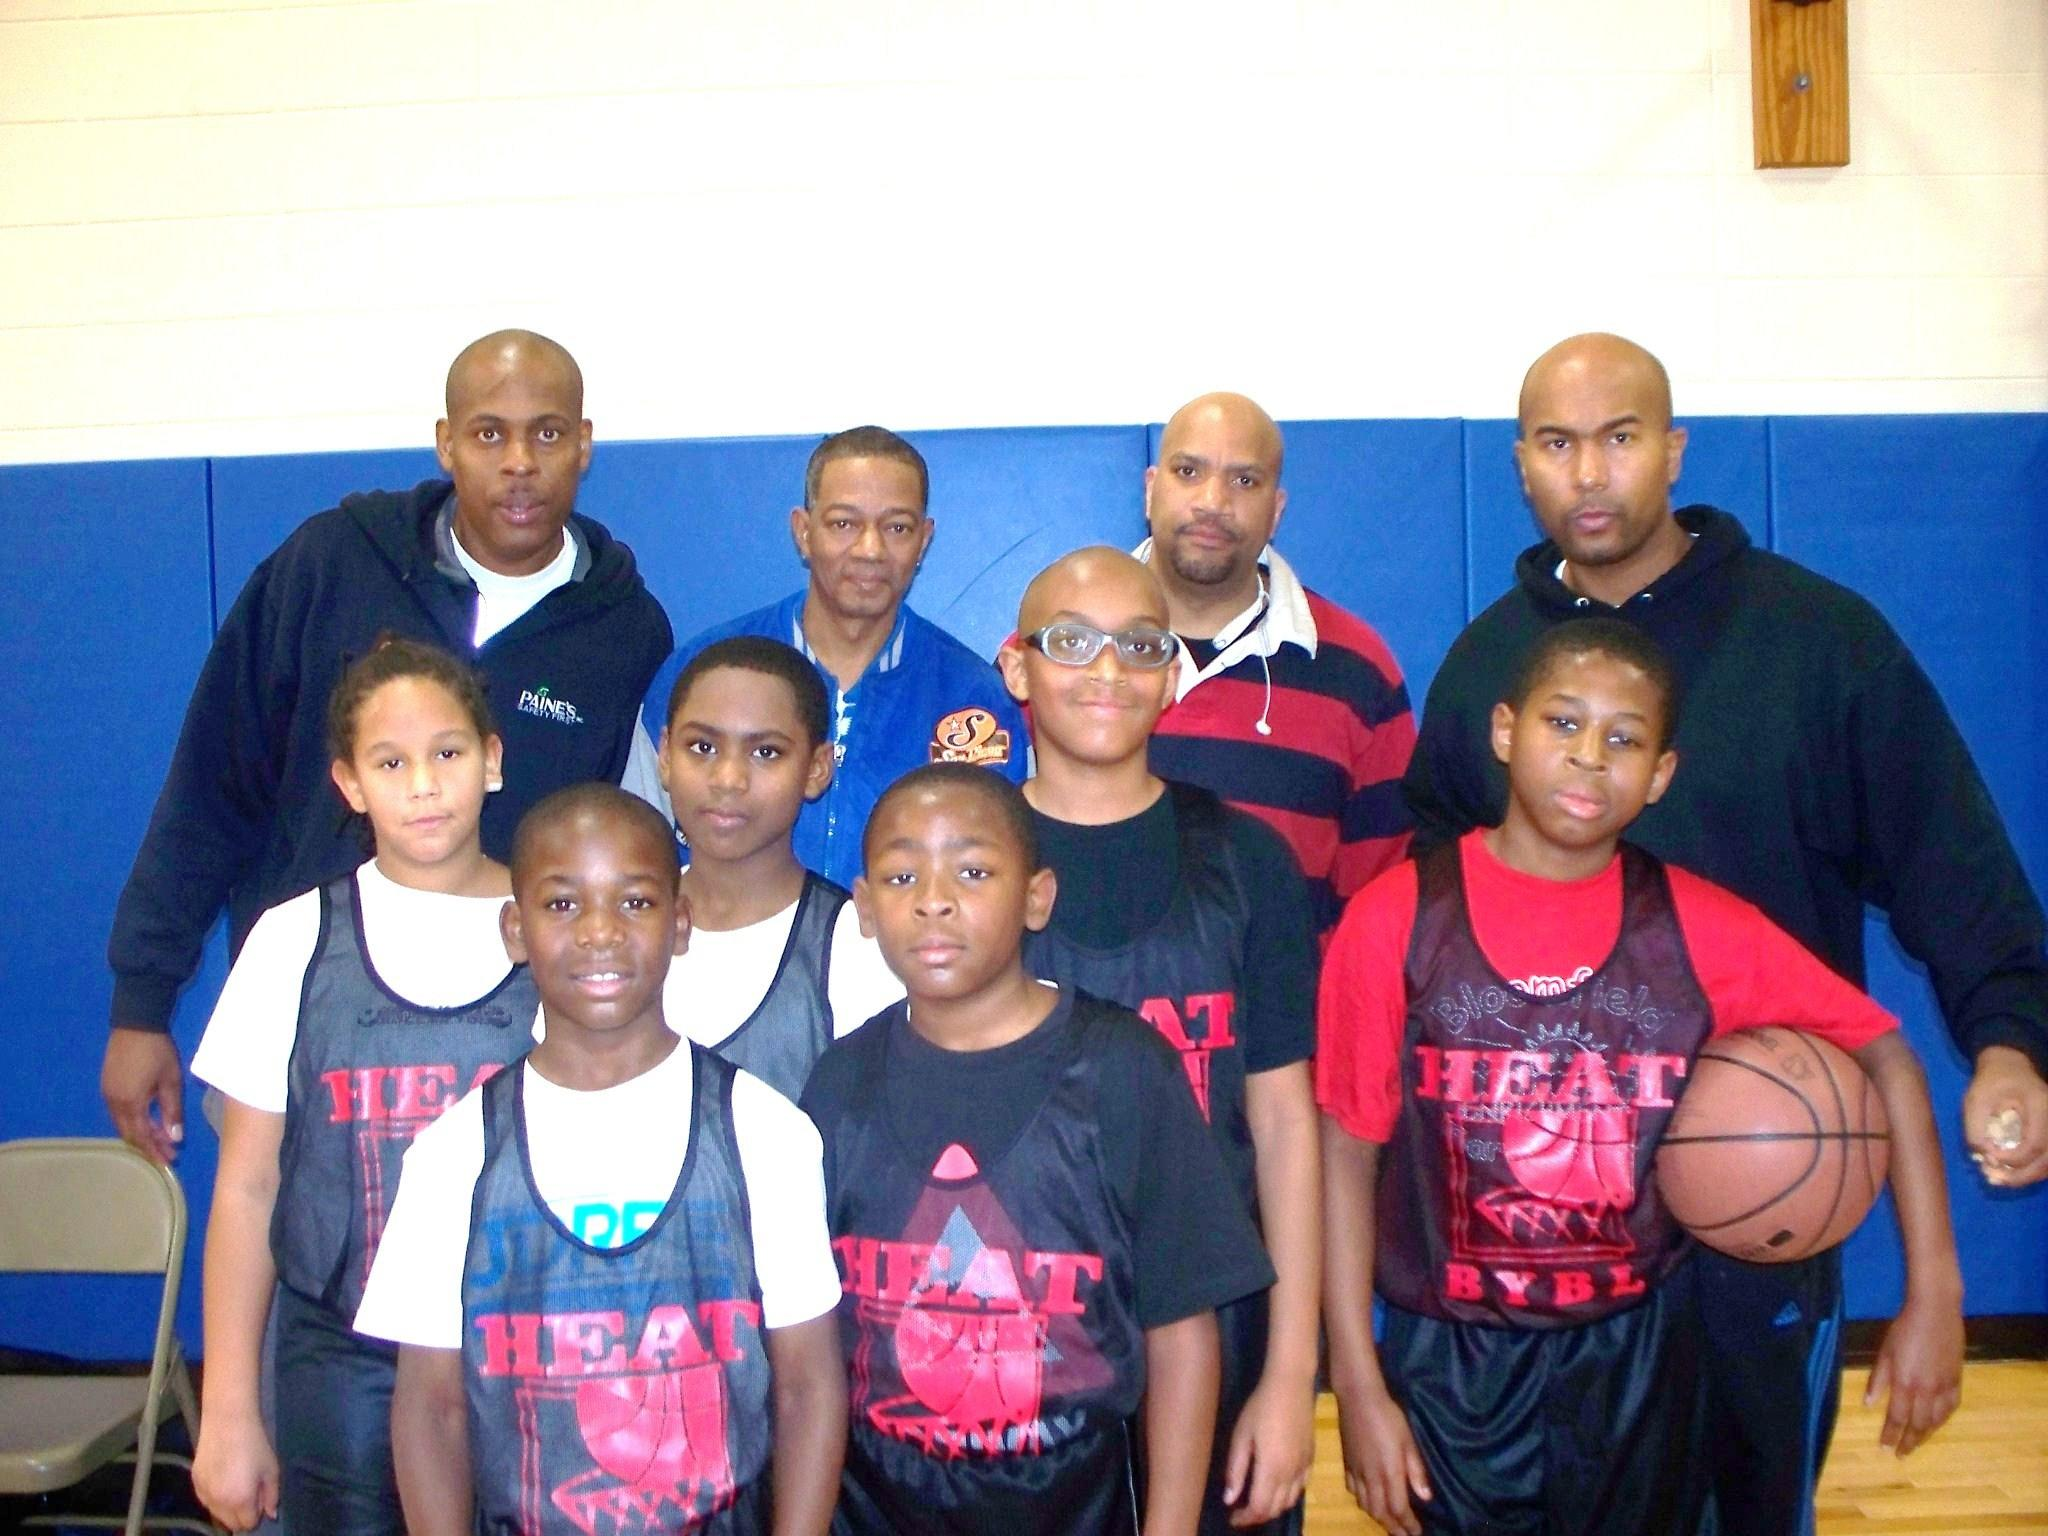 The BYBL 5th/6th grade division Heat players and coaching staff pose for a picture. The Heat defeated the Cavaliers 24-11 in week six play last Saturday, March 8.